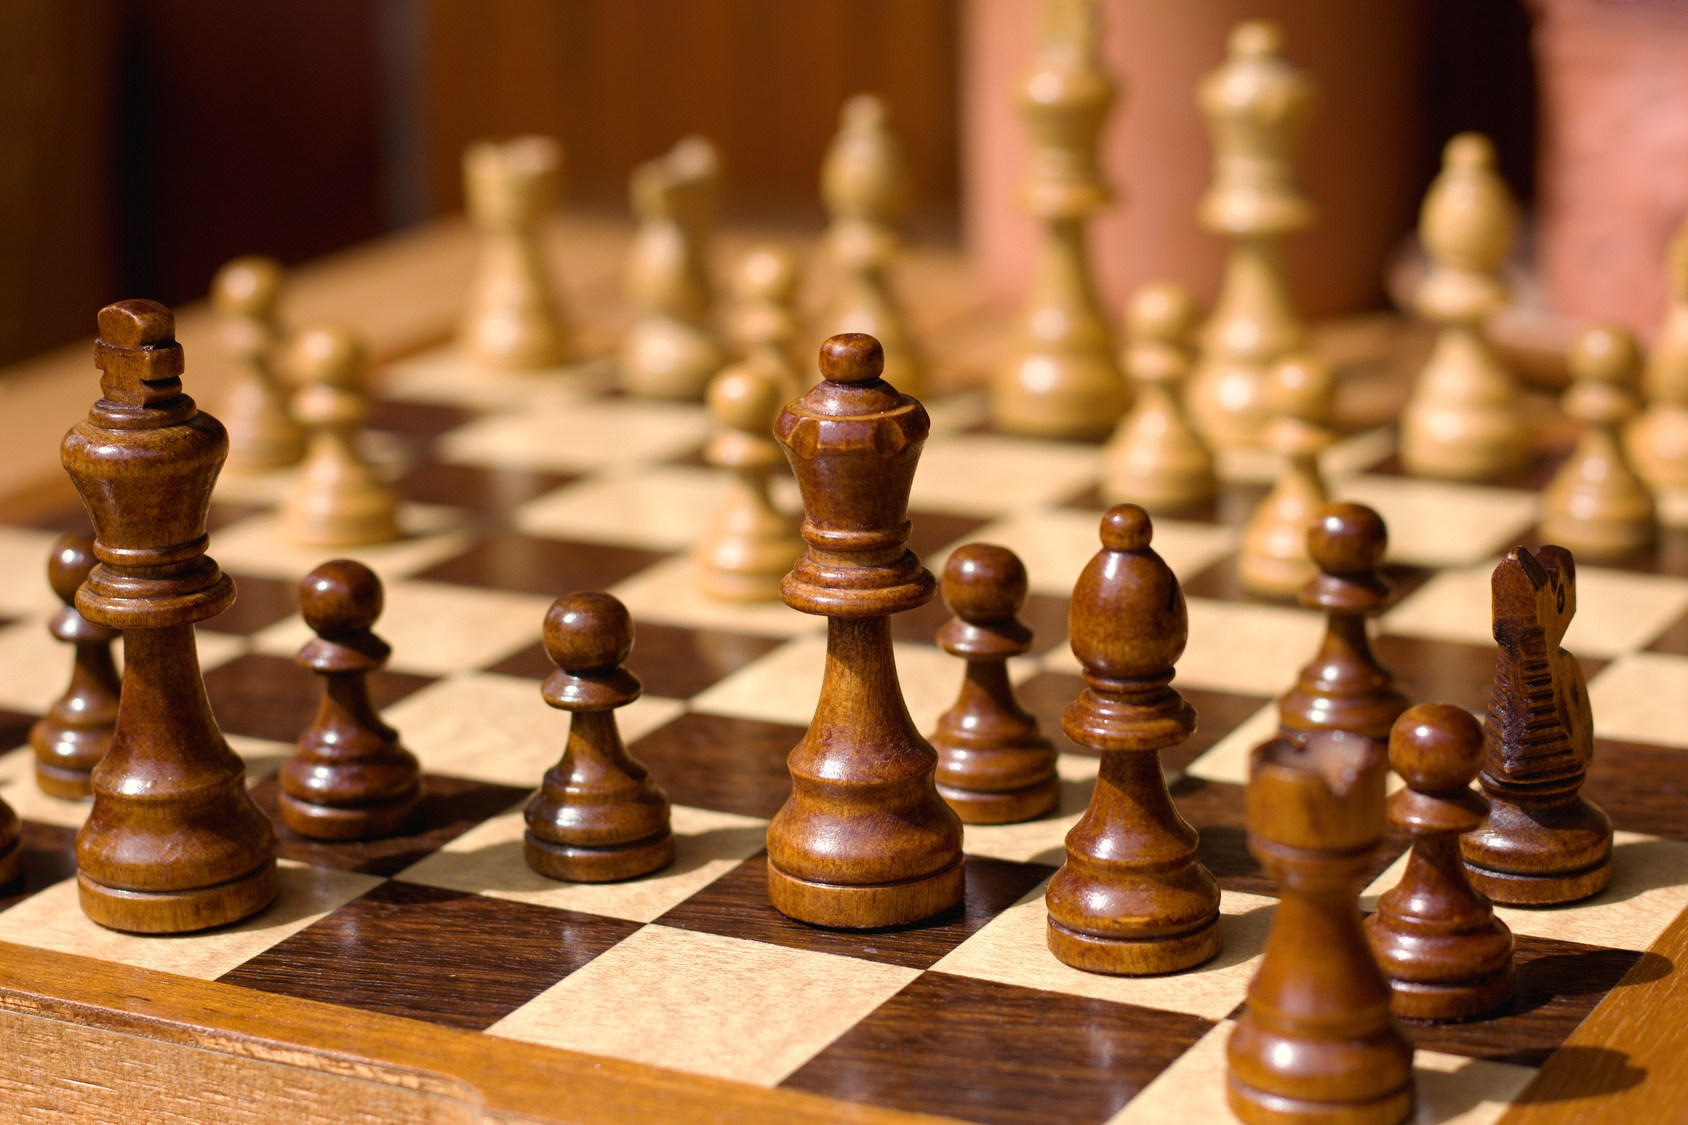 Come play chess with us!